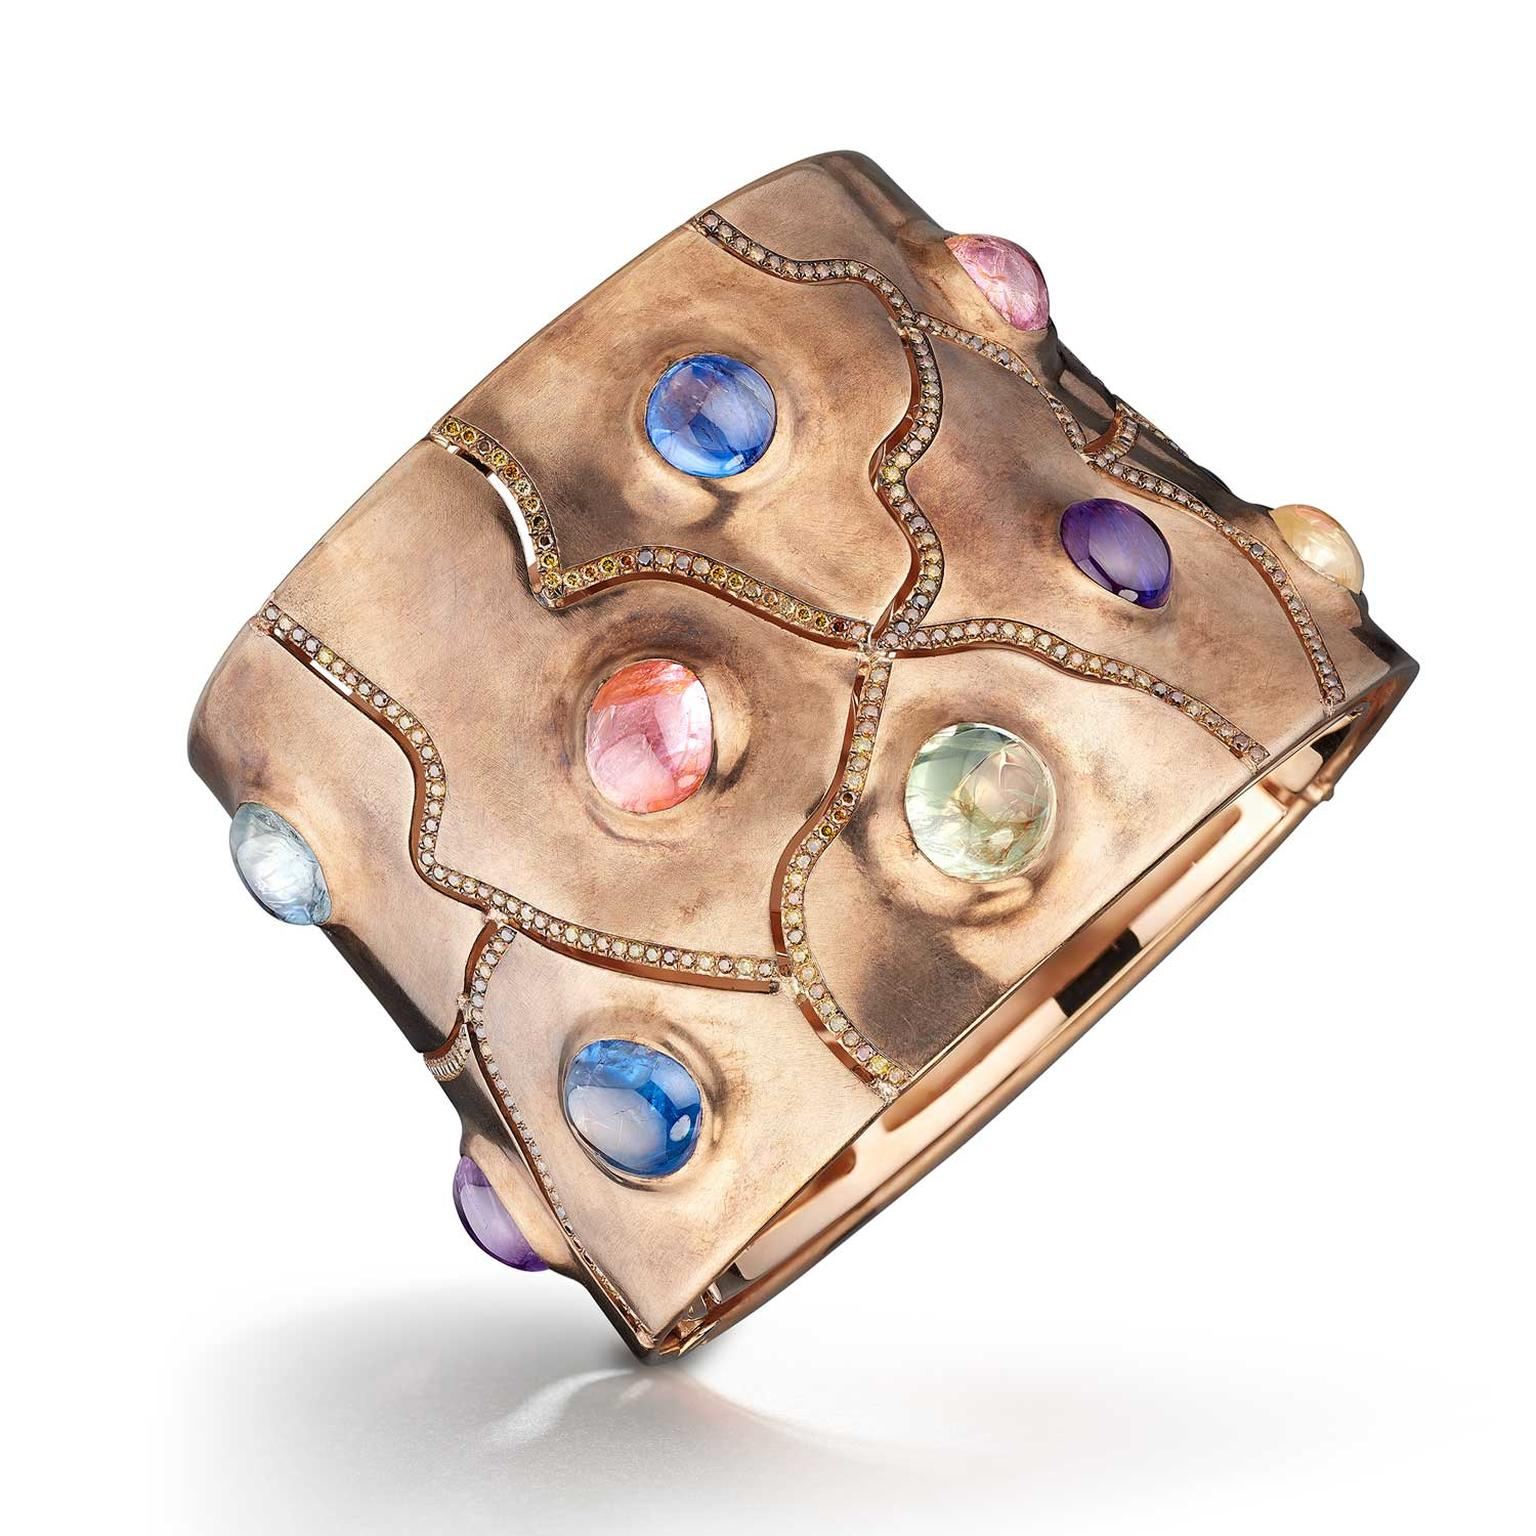 Suzanne Syz cabochon sapphire cuff in bronze and gold